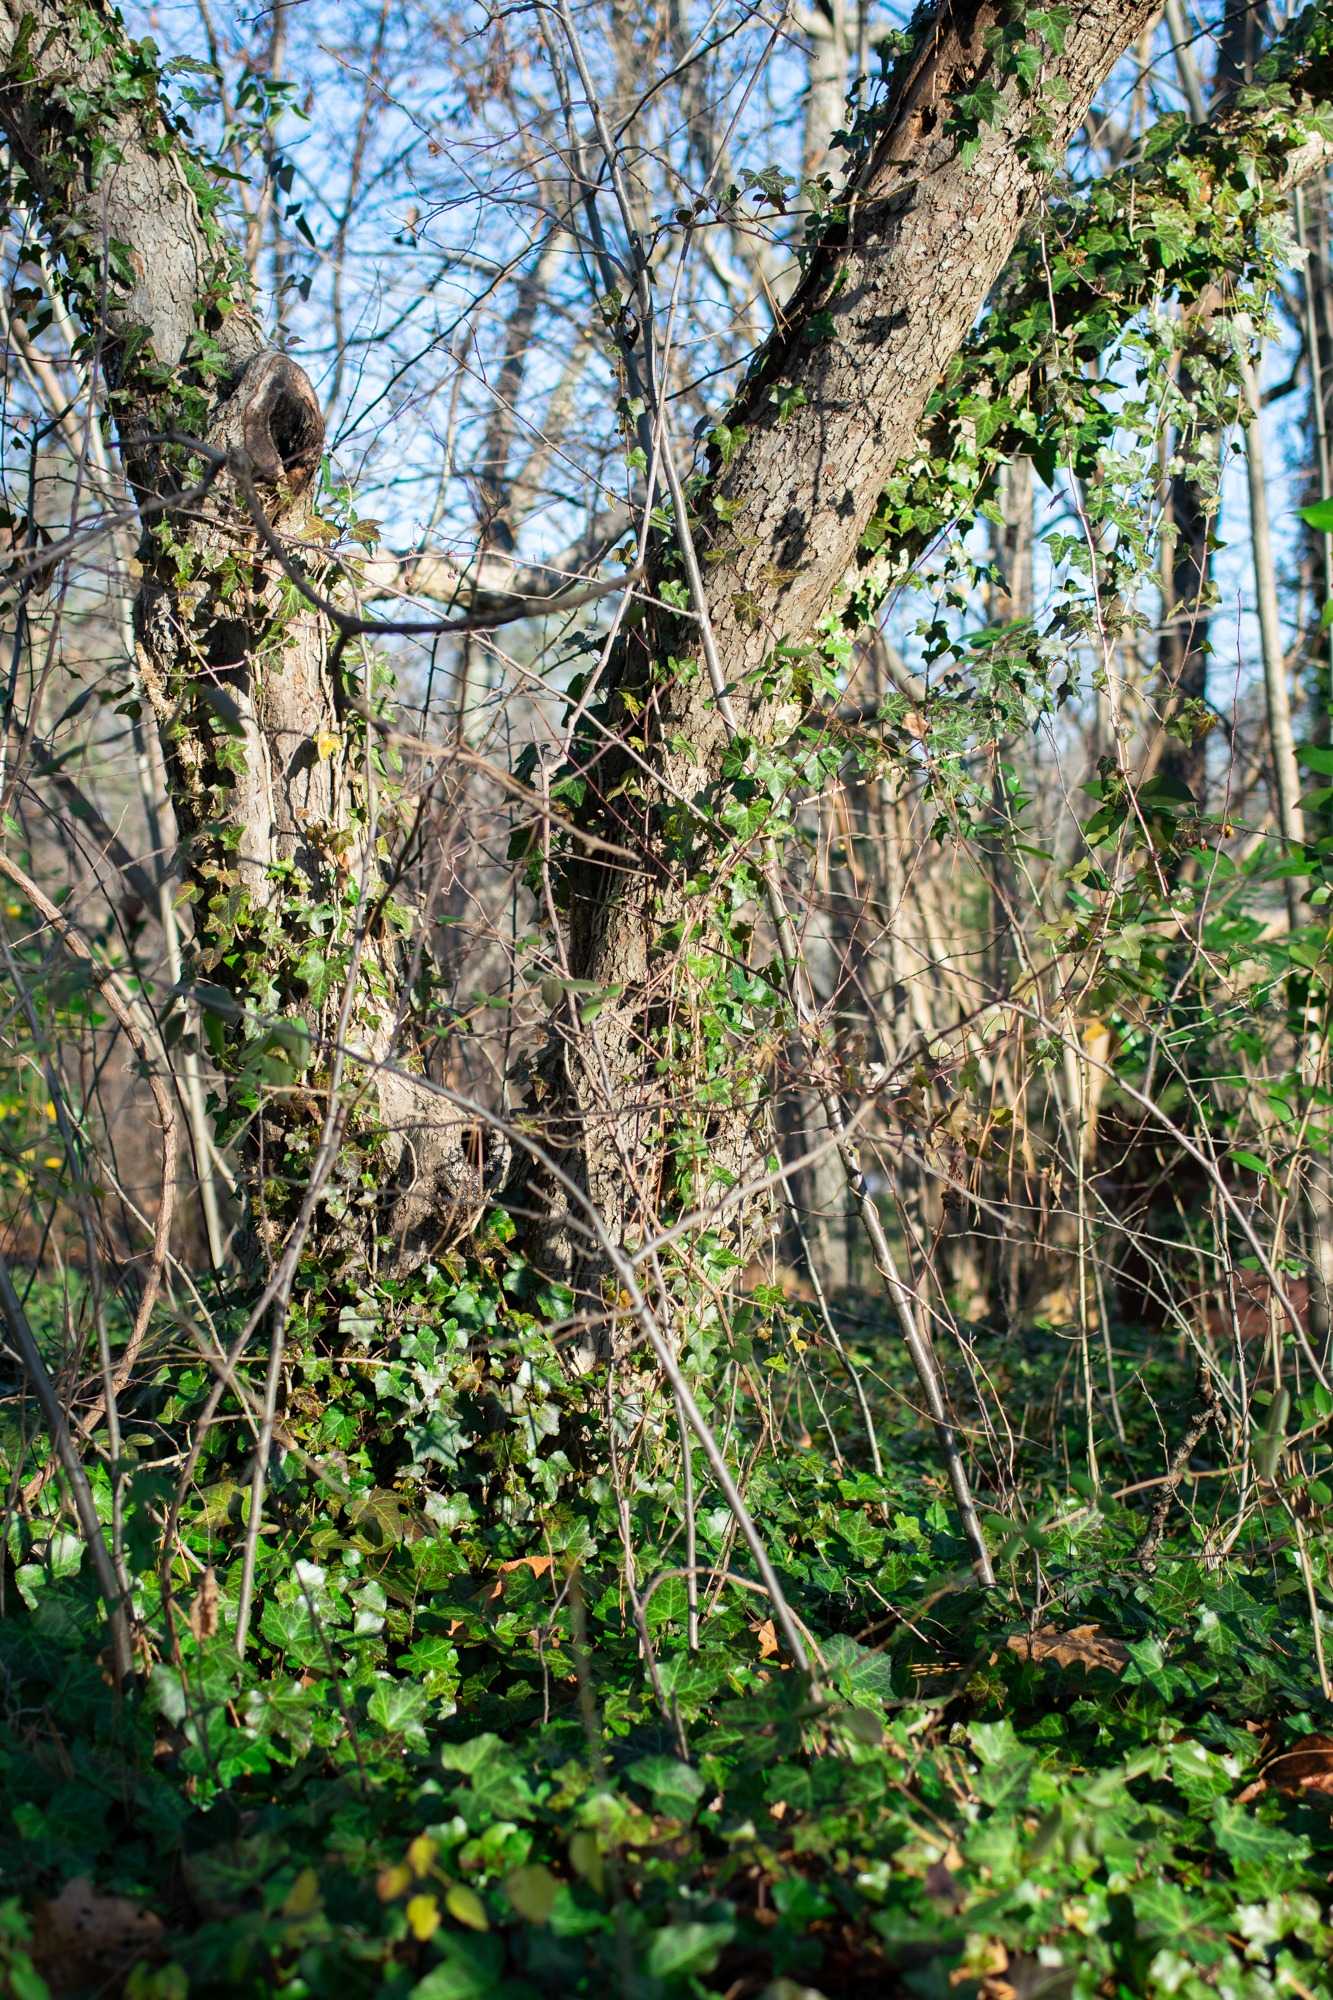 English ivy consuming a tree; porcelain berry vines dangling off tree.